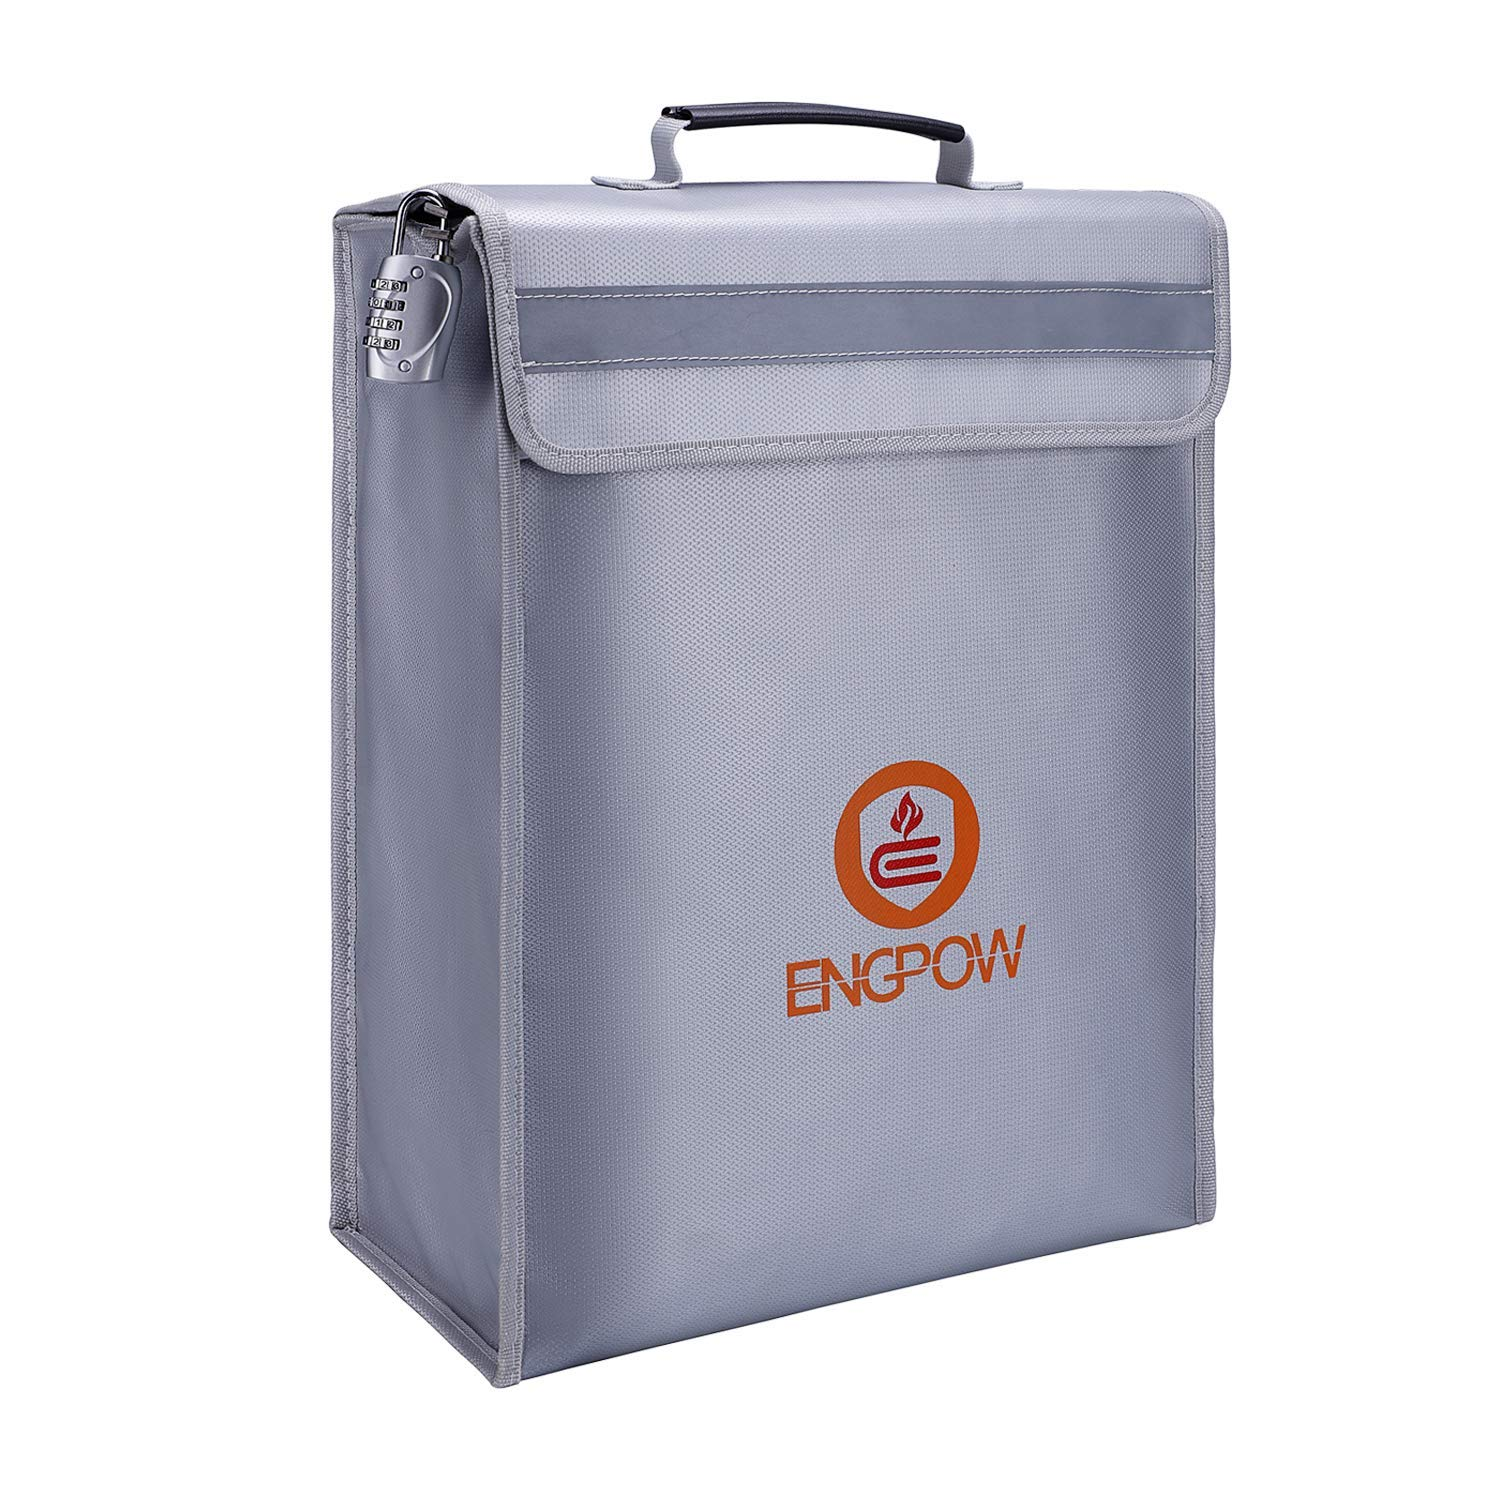 ENGPOW Large Fireproof Bag,Fireproof Lock Box Bag Document Bag Money Bag with Combination Lock Zipper Closure,Fireproof Safe and Water Resistant Storage for Documents,Money,Valuables (16''x12''x5'')